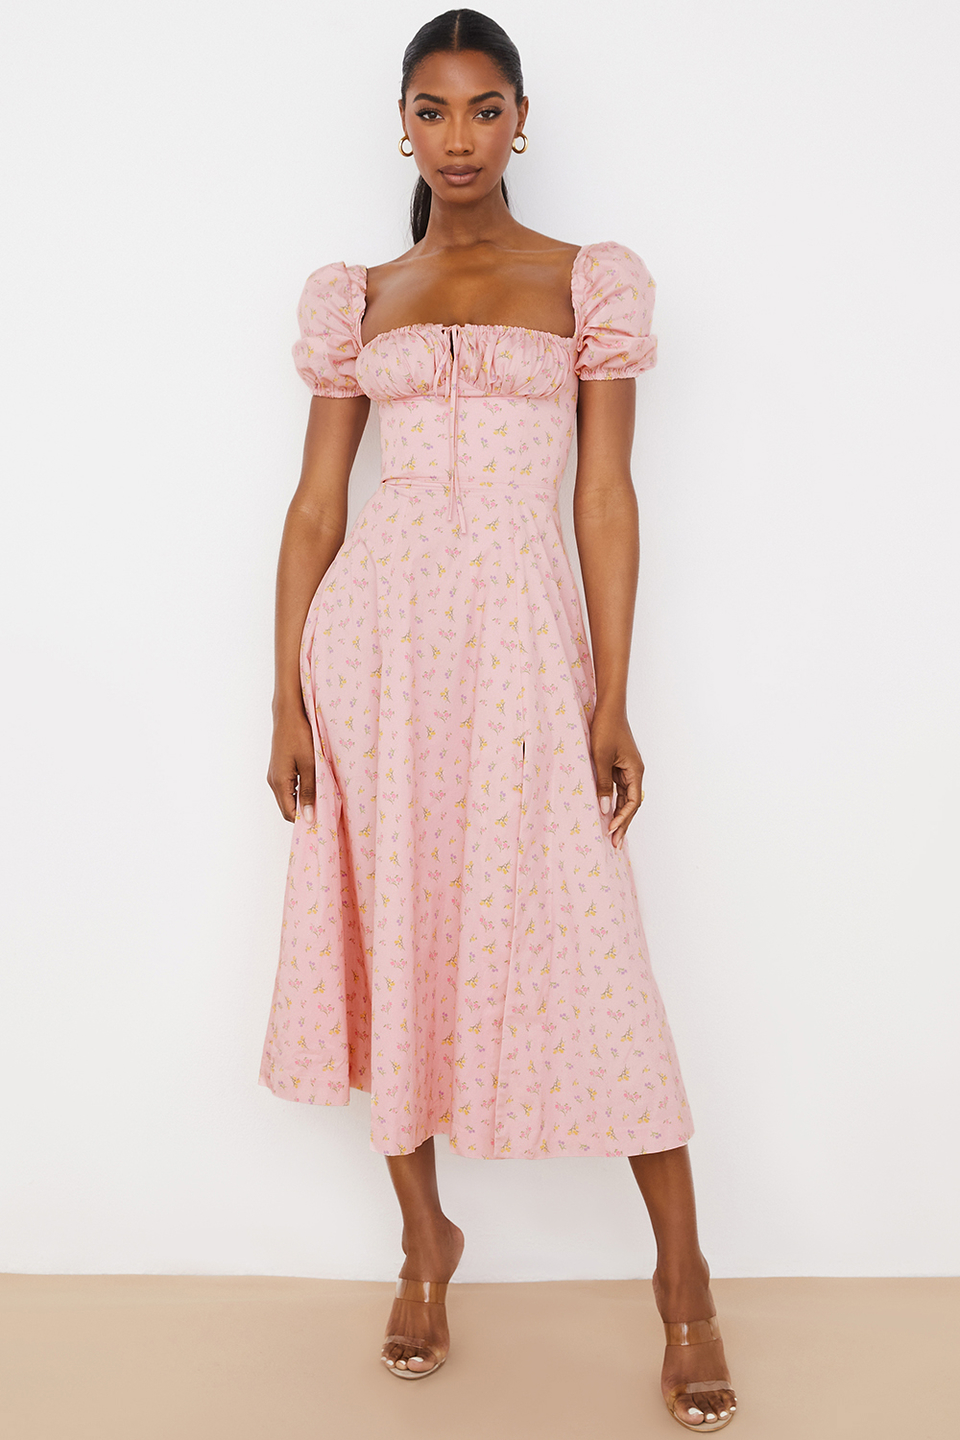 Tallulah Pink Floral Puff Sleeve Midi Dress